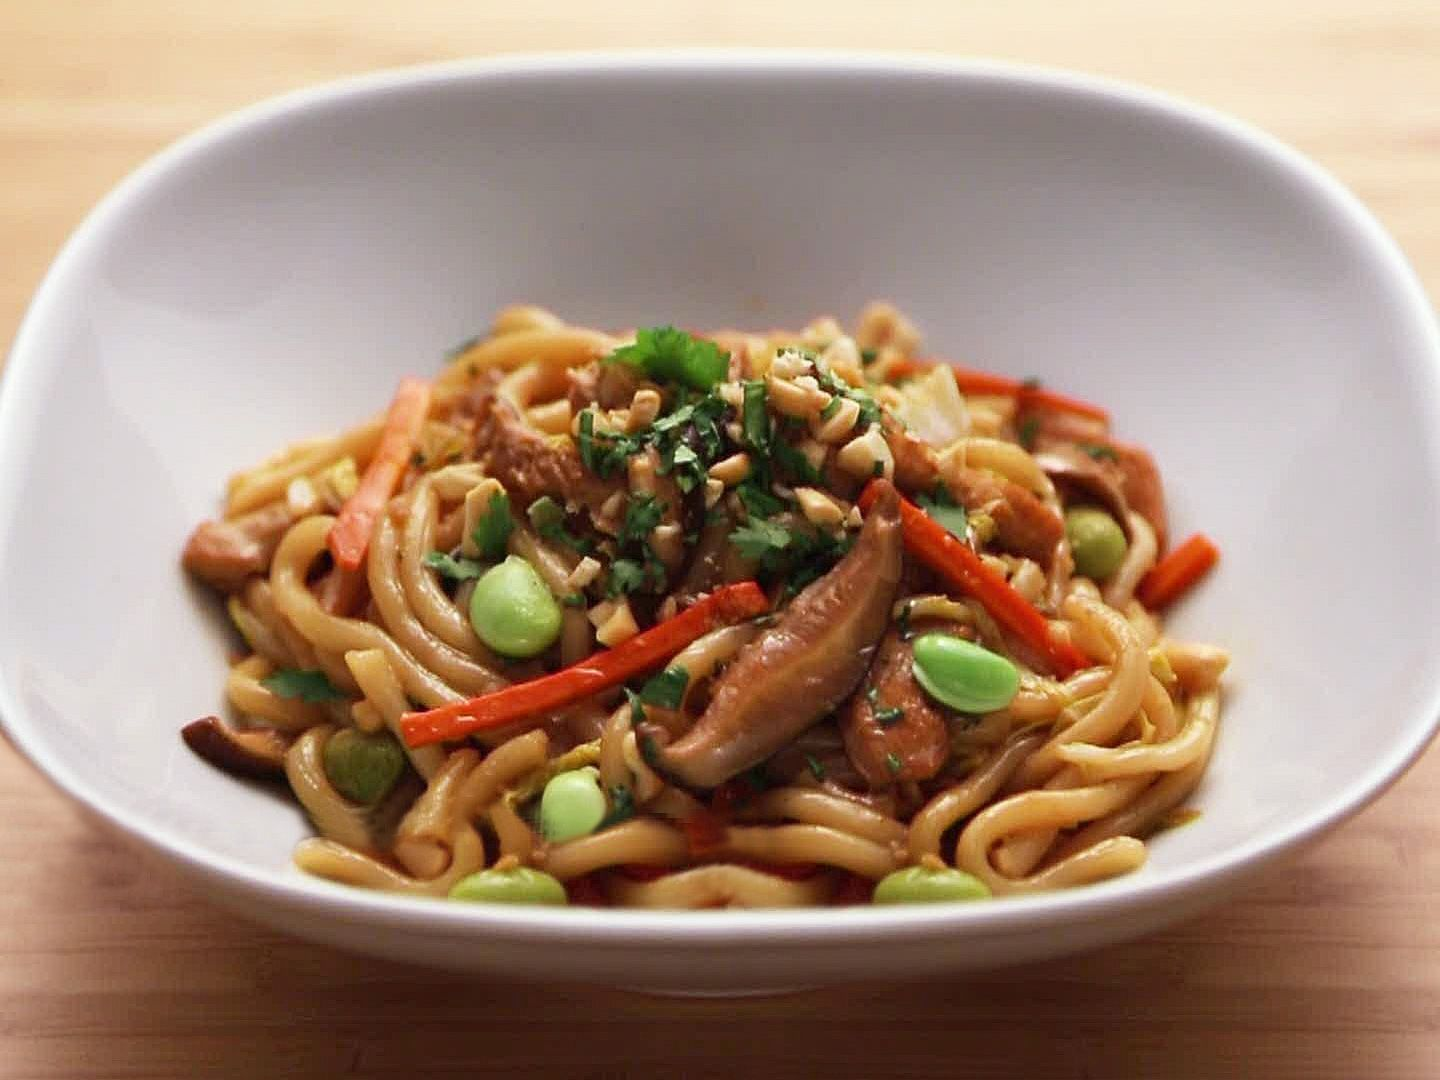 Chicken and vegetable stir fry with udon noodles recipe chicken and vegetable stir fry with udon noodles recipe vegetable stir fry udon noodles and noodle recipes forumfinder Gallery